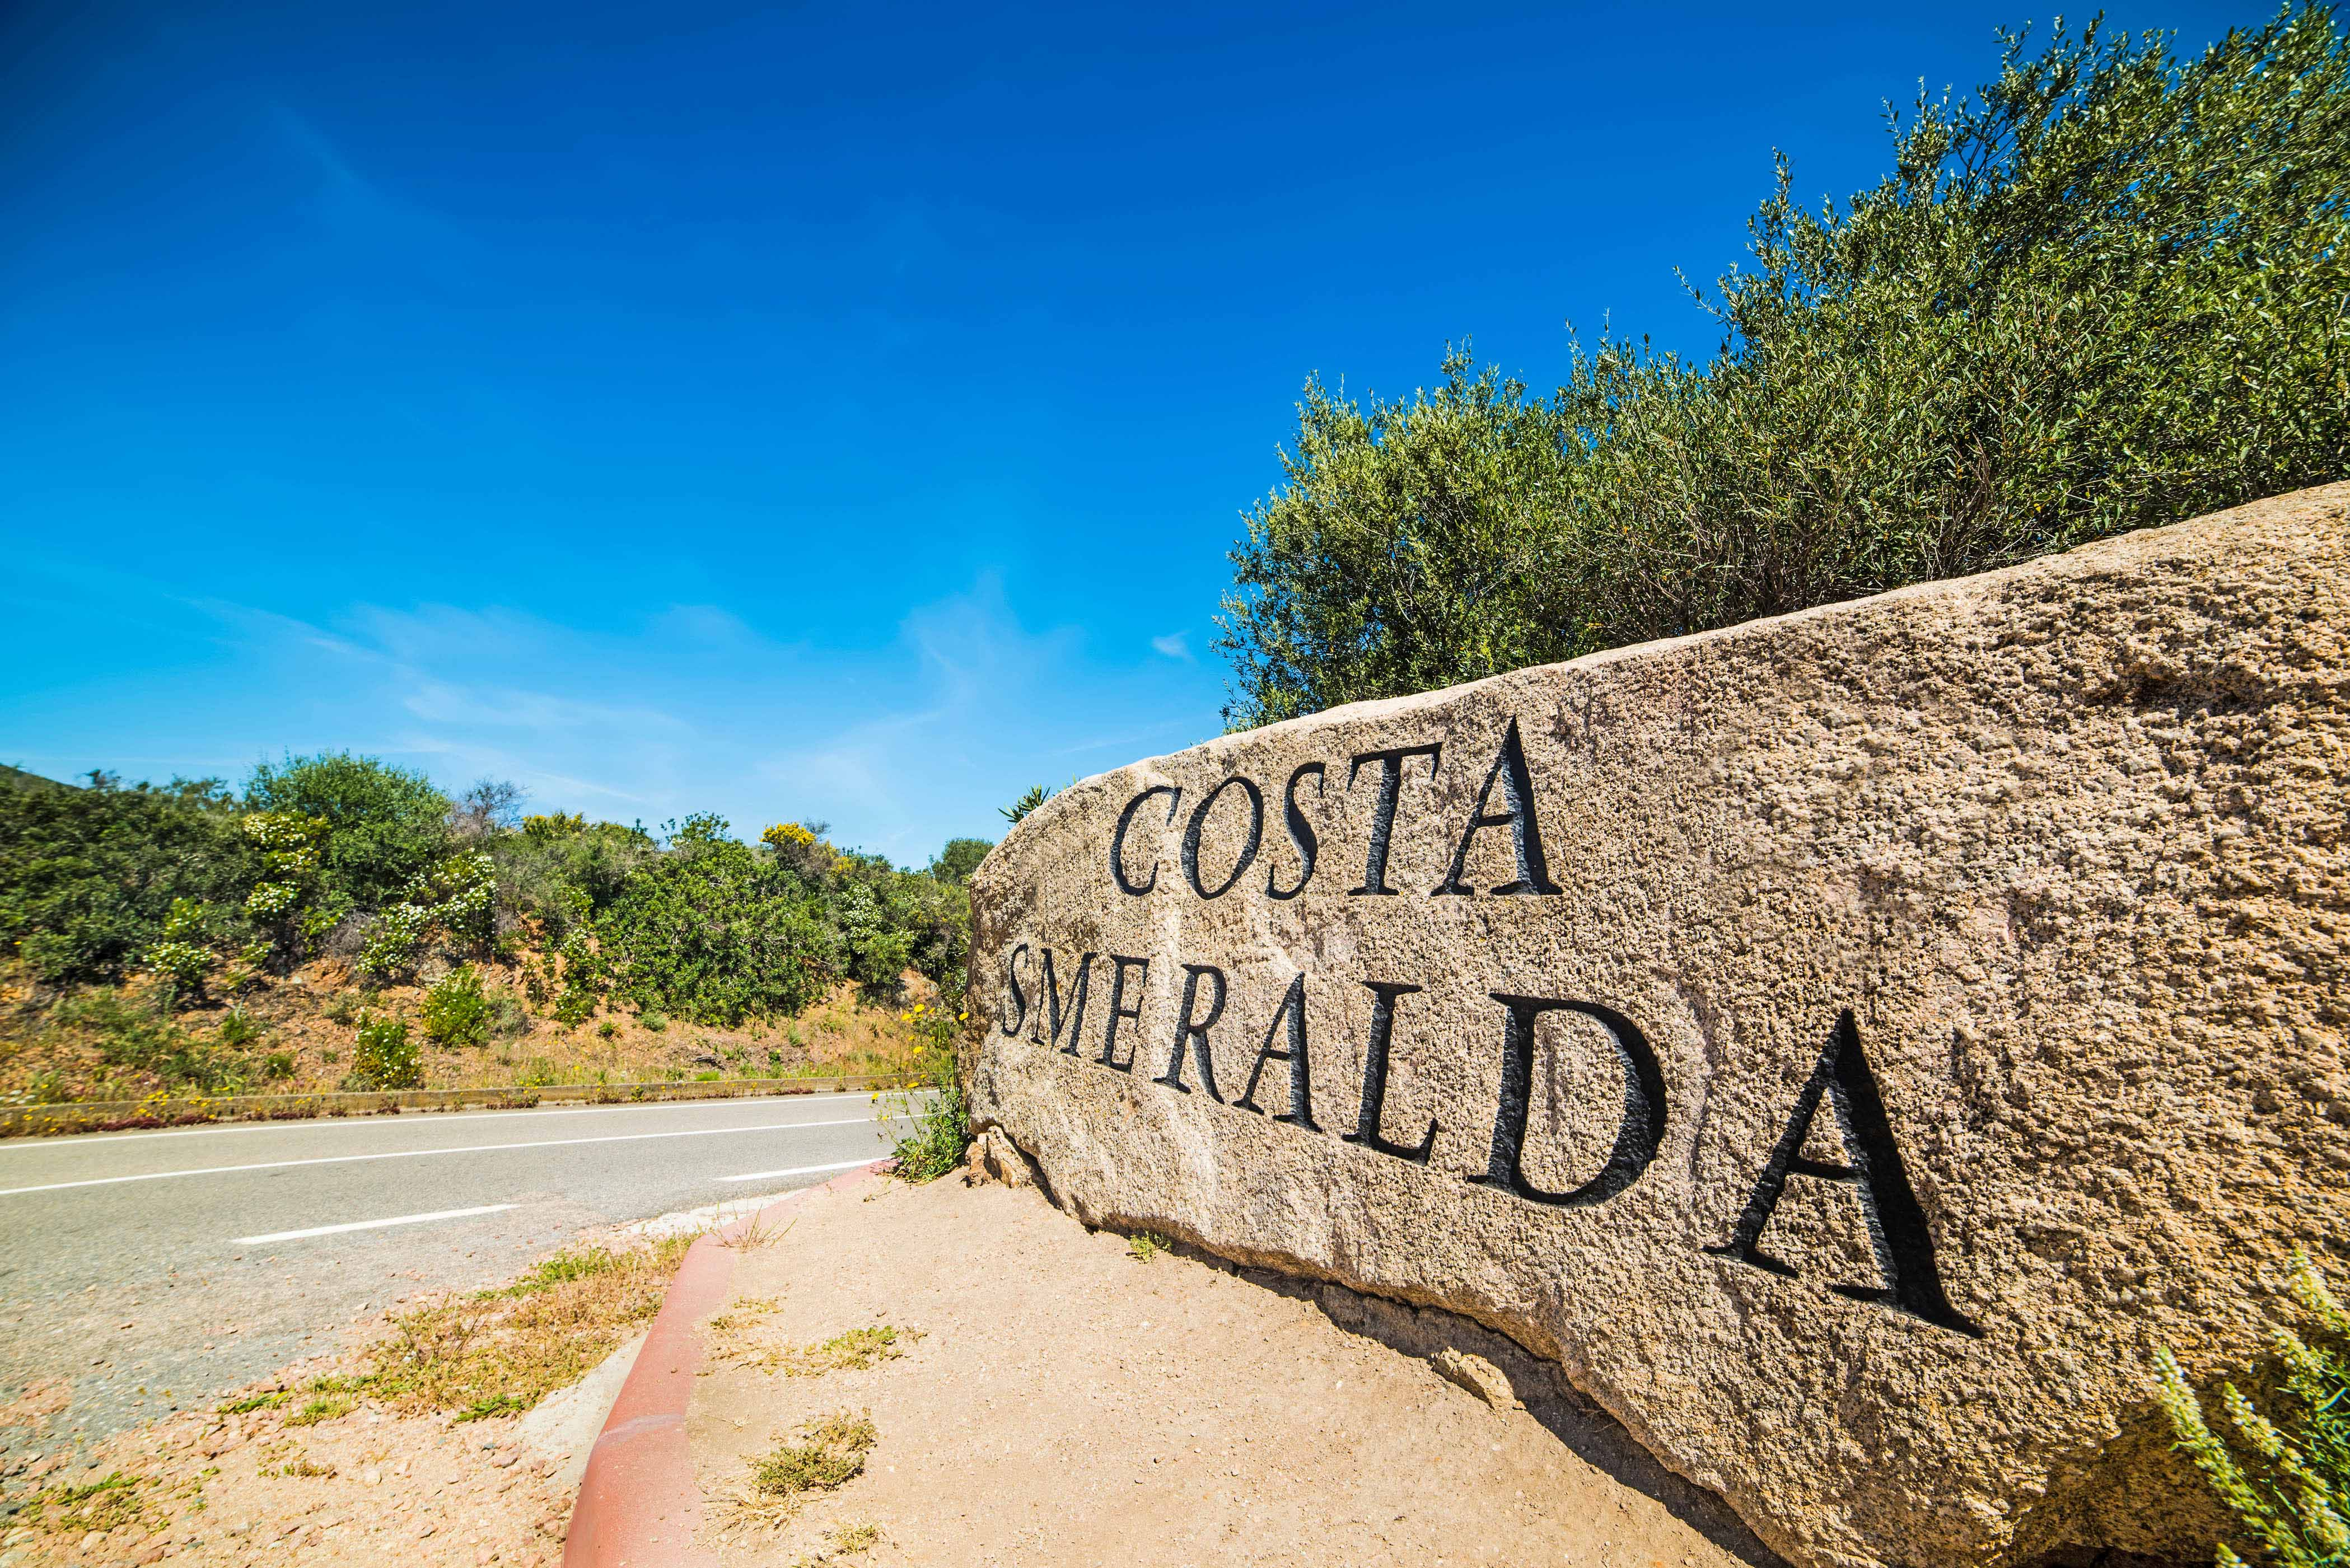 world famous Costa Smeralda sign